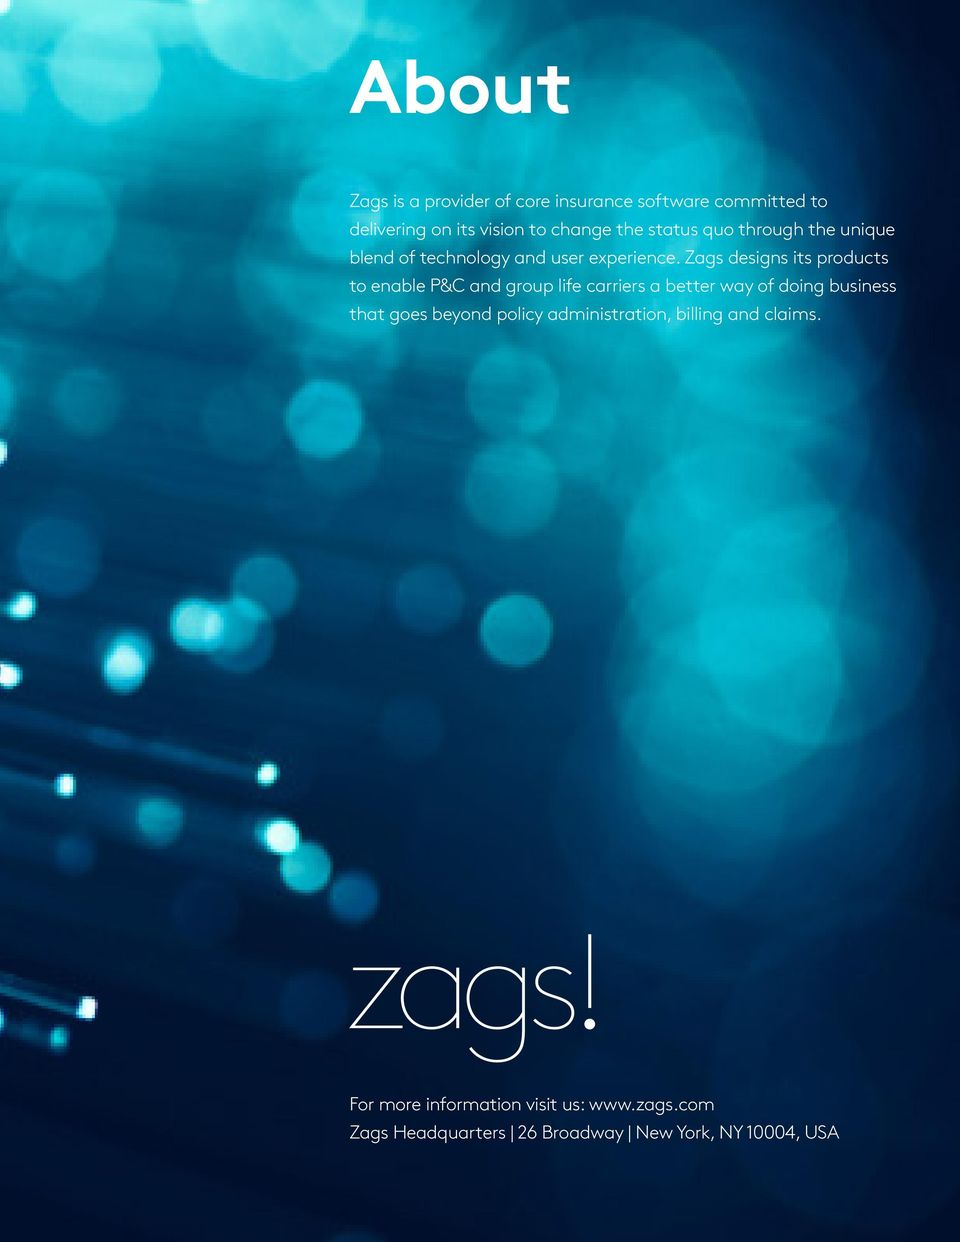 Zags designs its products to enable P&C and group life carriers a better way of doing business that goes